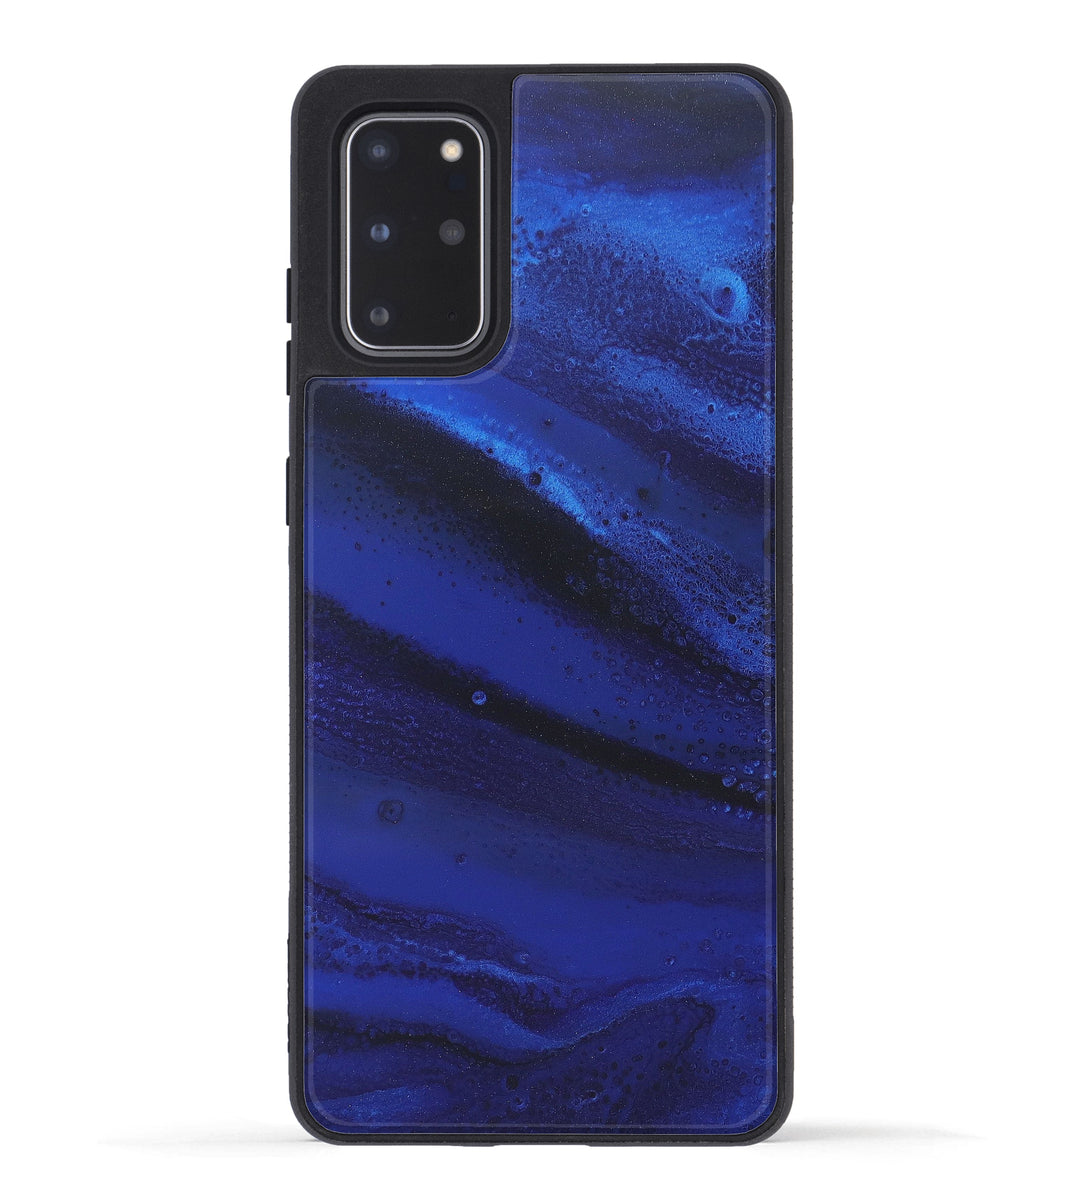 Galaxy S20 Plus ResinArt Phone Case - Natasja (Dark Blue, 348481)